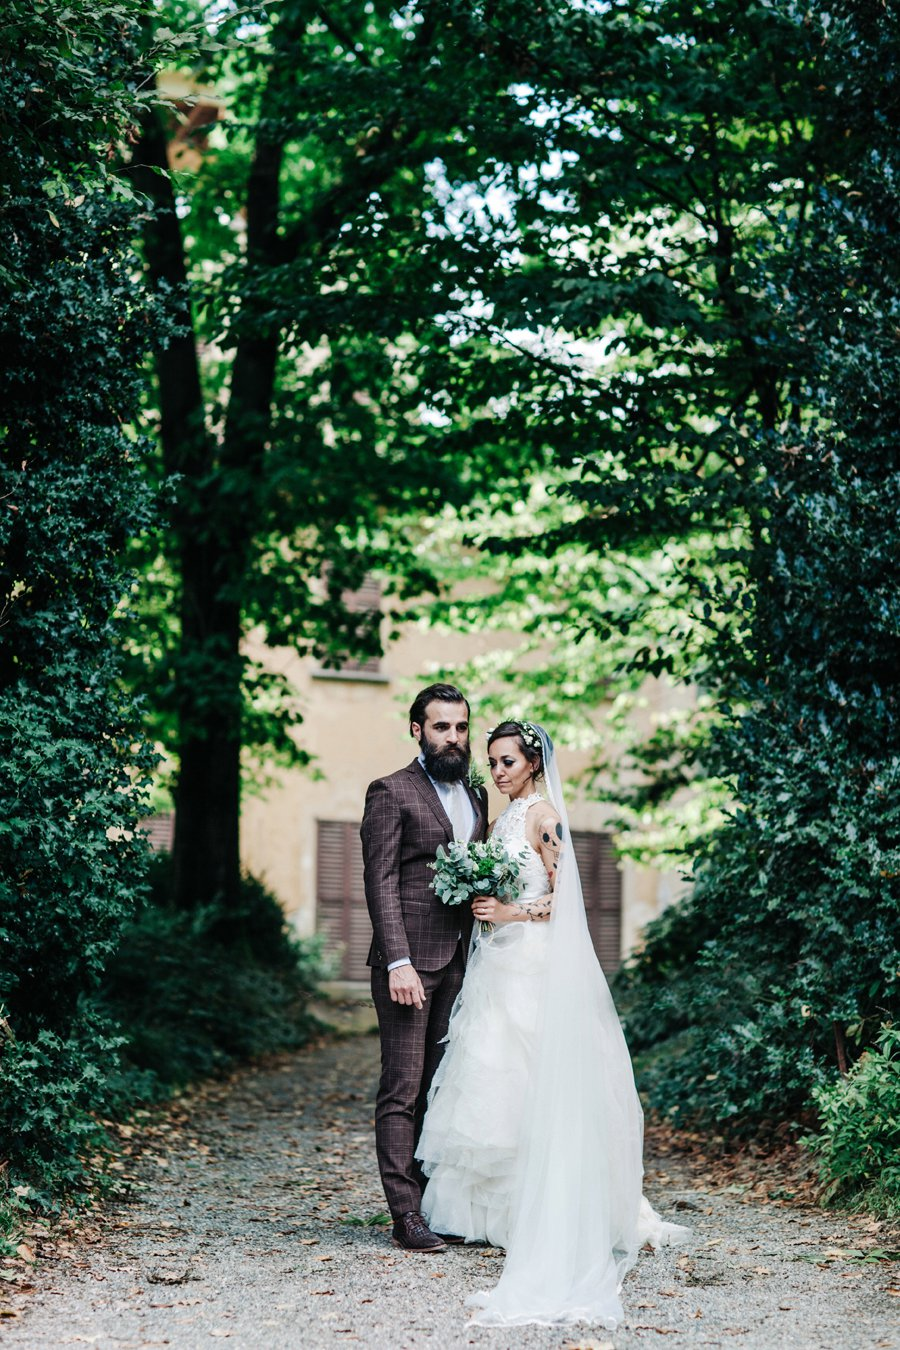 Rustic Nature, Macrame & Lace with Yolan Cris Bride_0068